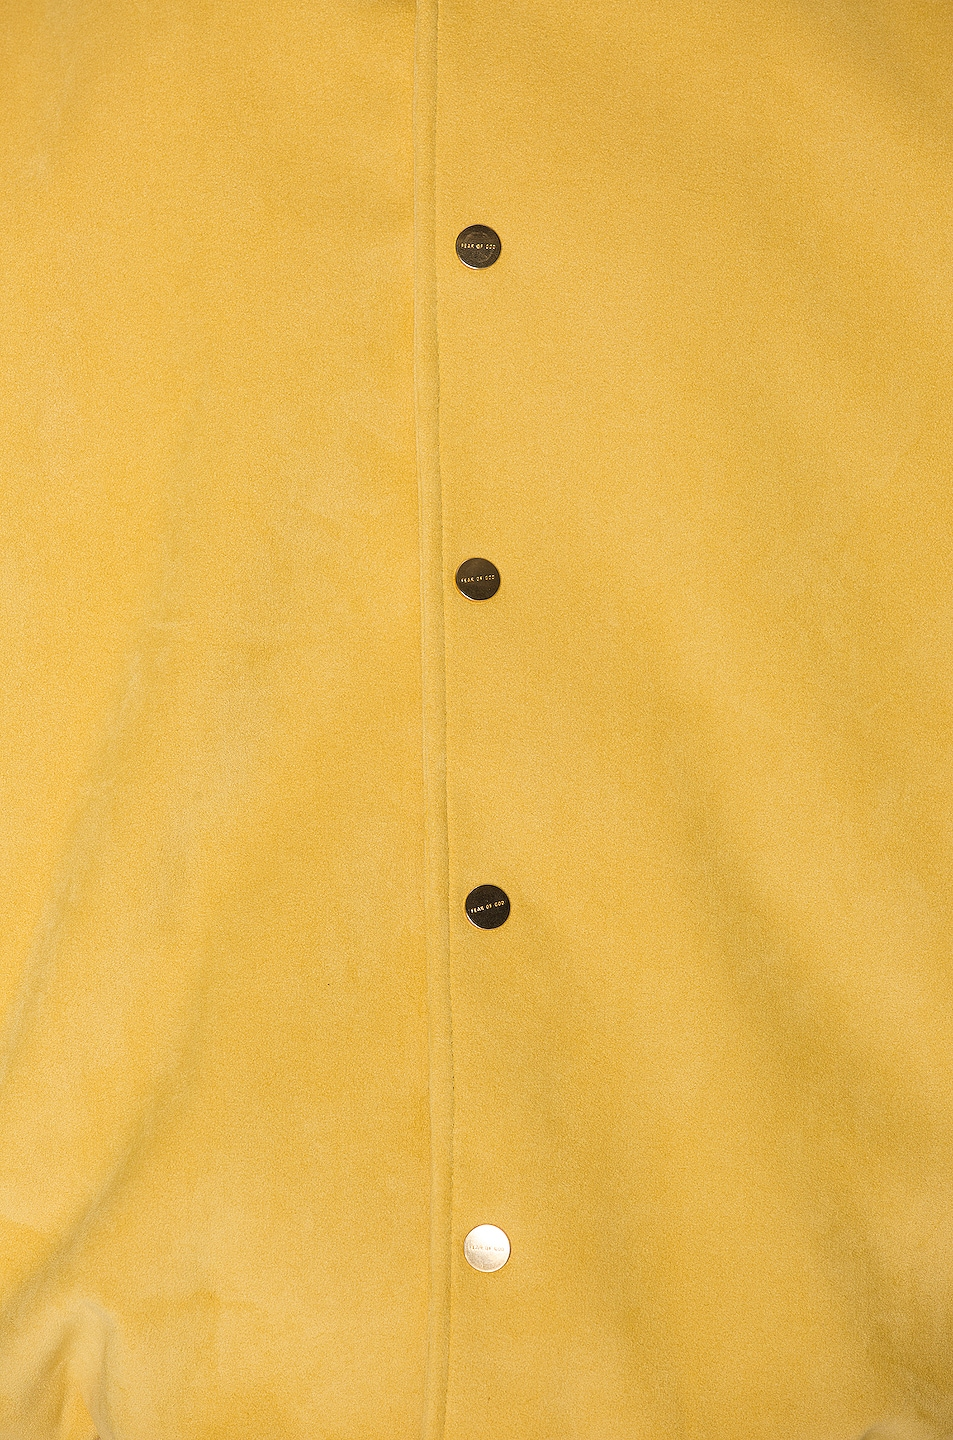 Image 7 of Fear of God 6th Collection Varsity Jacket in Garden Glove Yellow